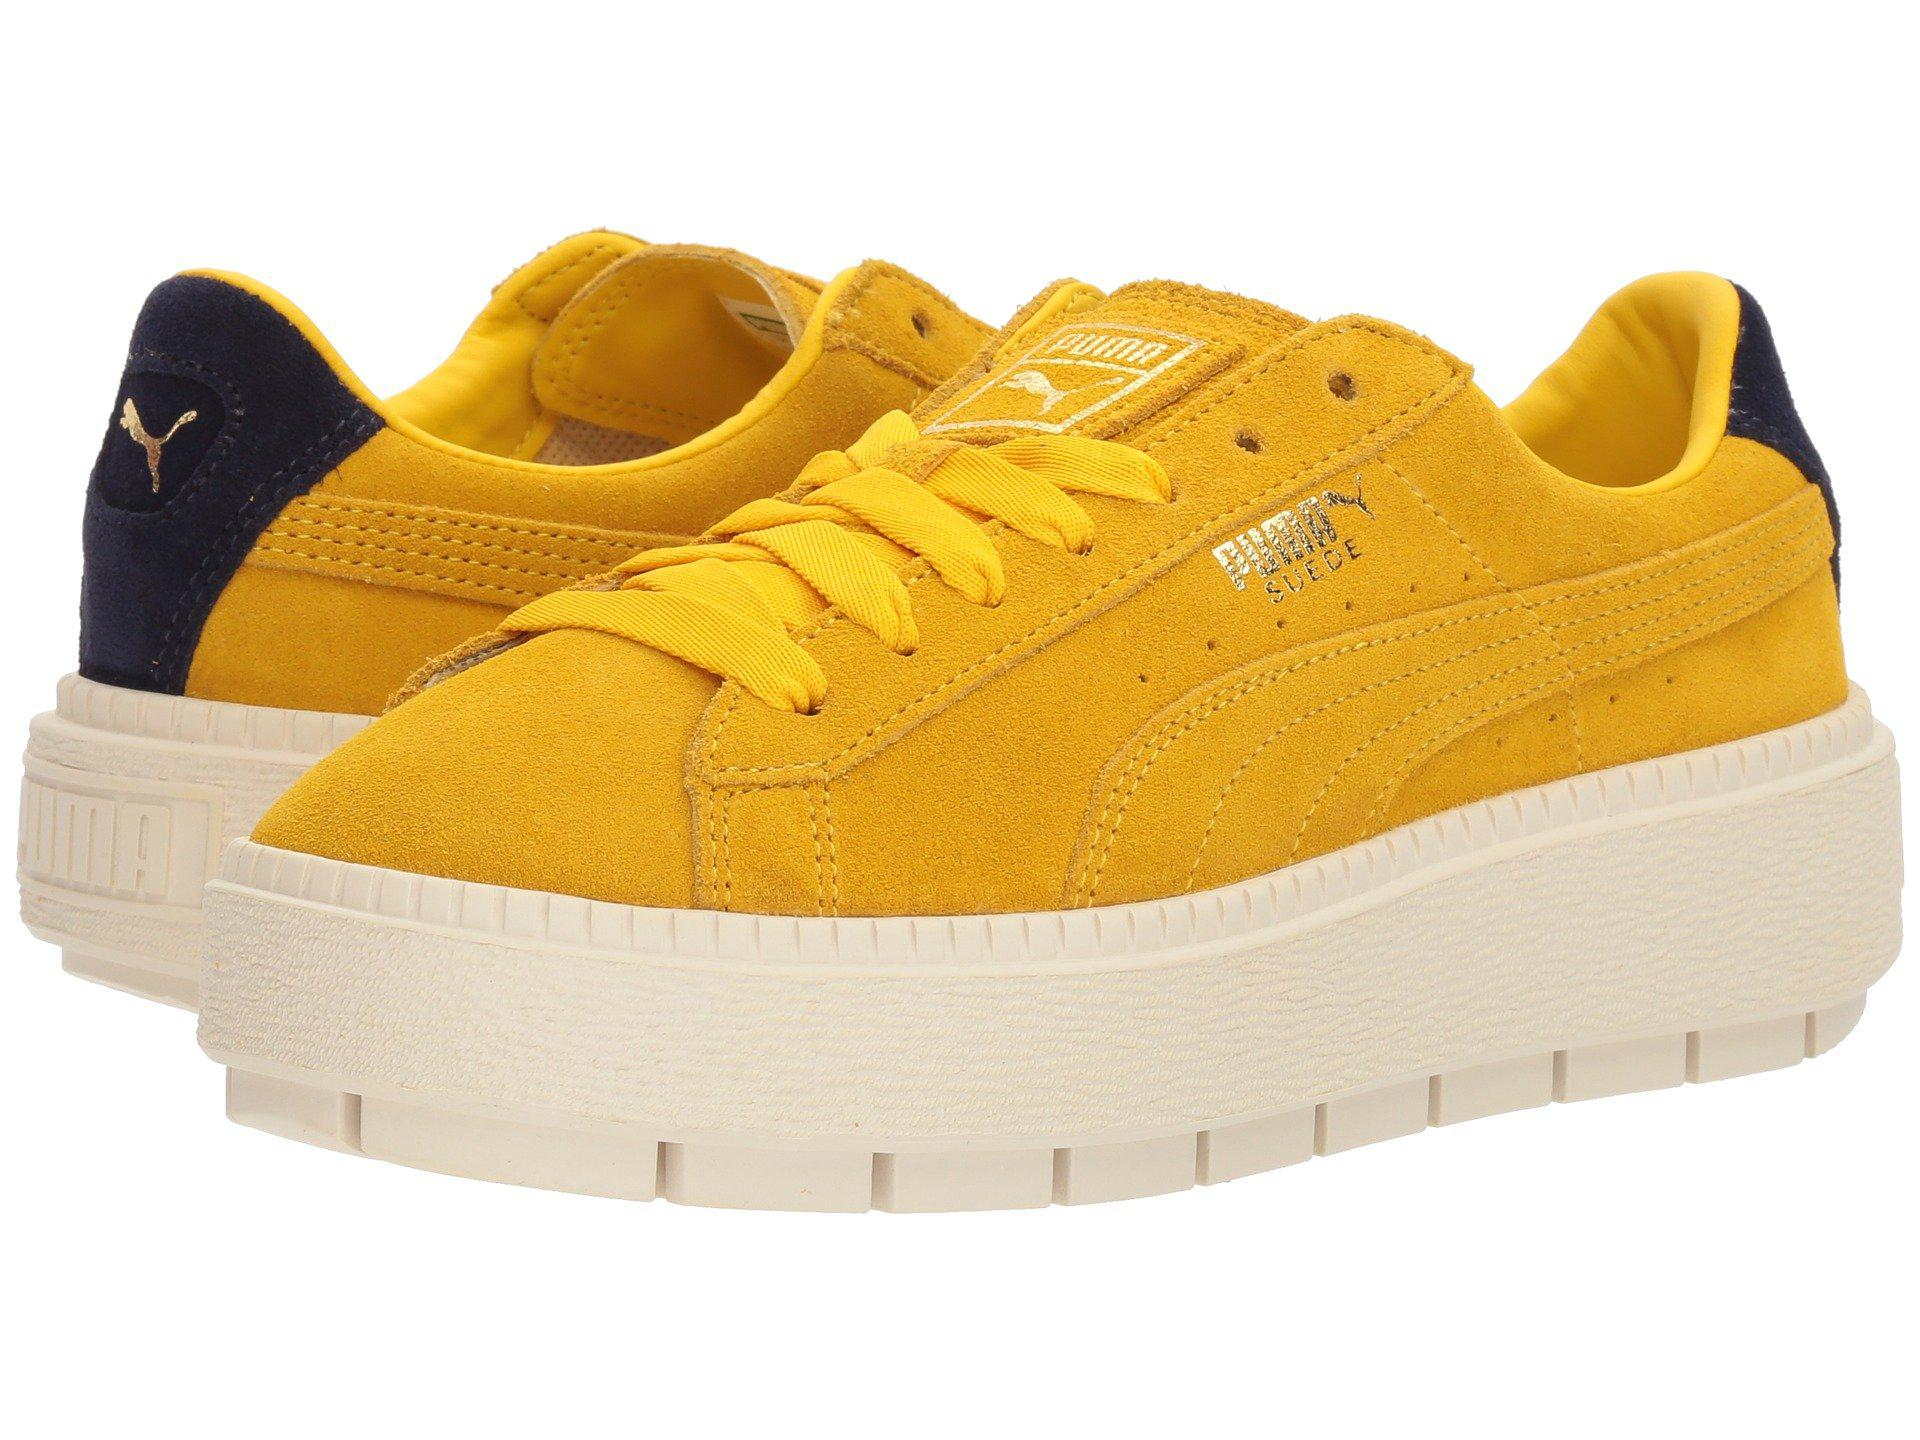 Free Shipping Shop SUEDE PLATFORM CORE - FOOTWEAR - Low-tops & sneakers Puma Sale Outlet Store KFqQo